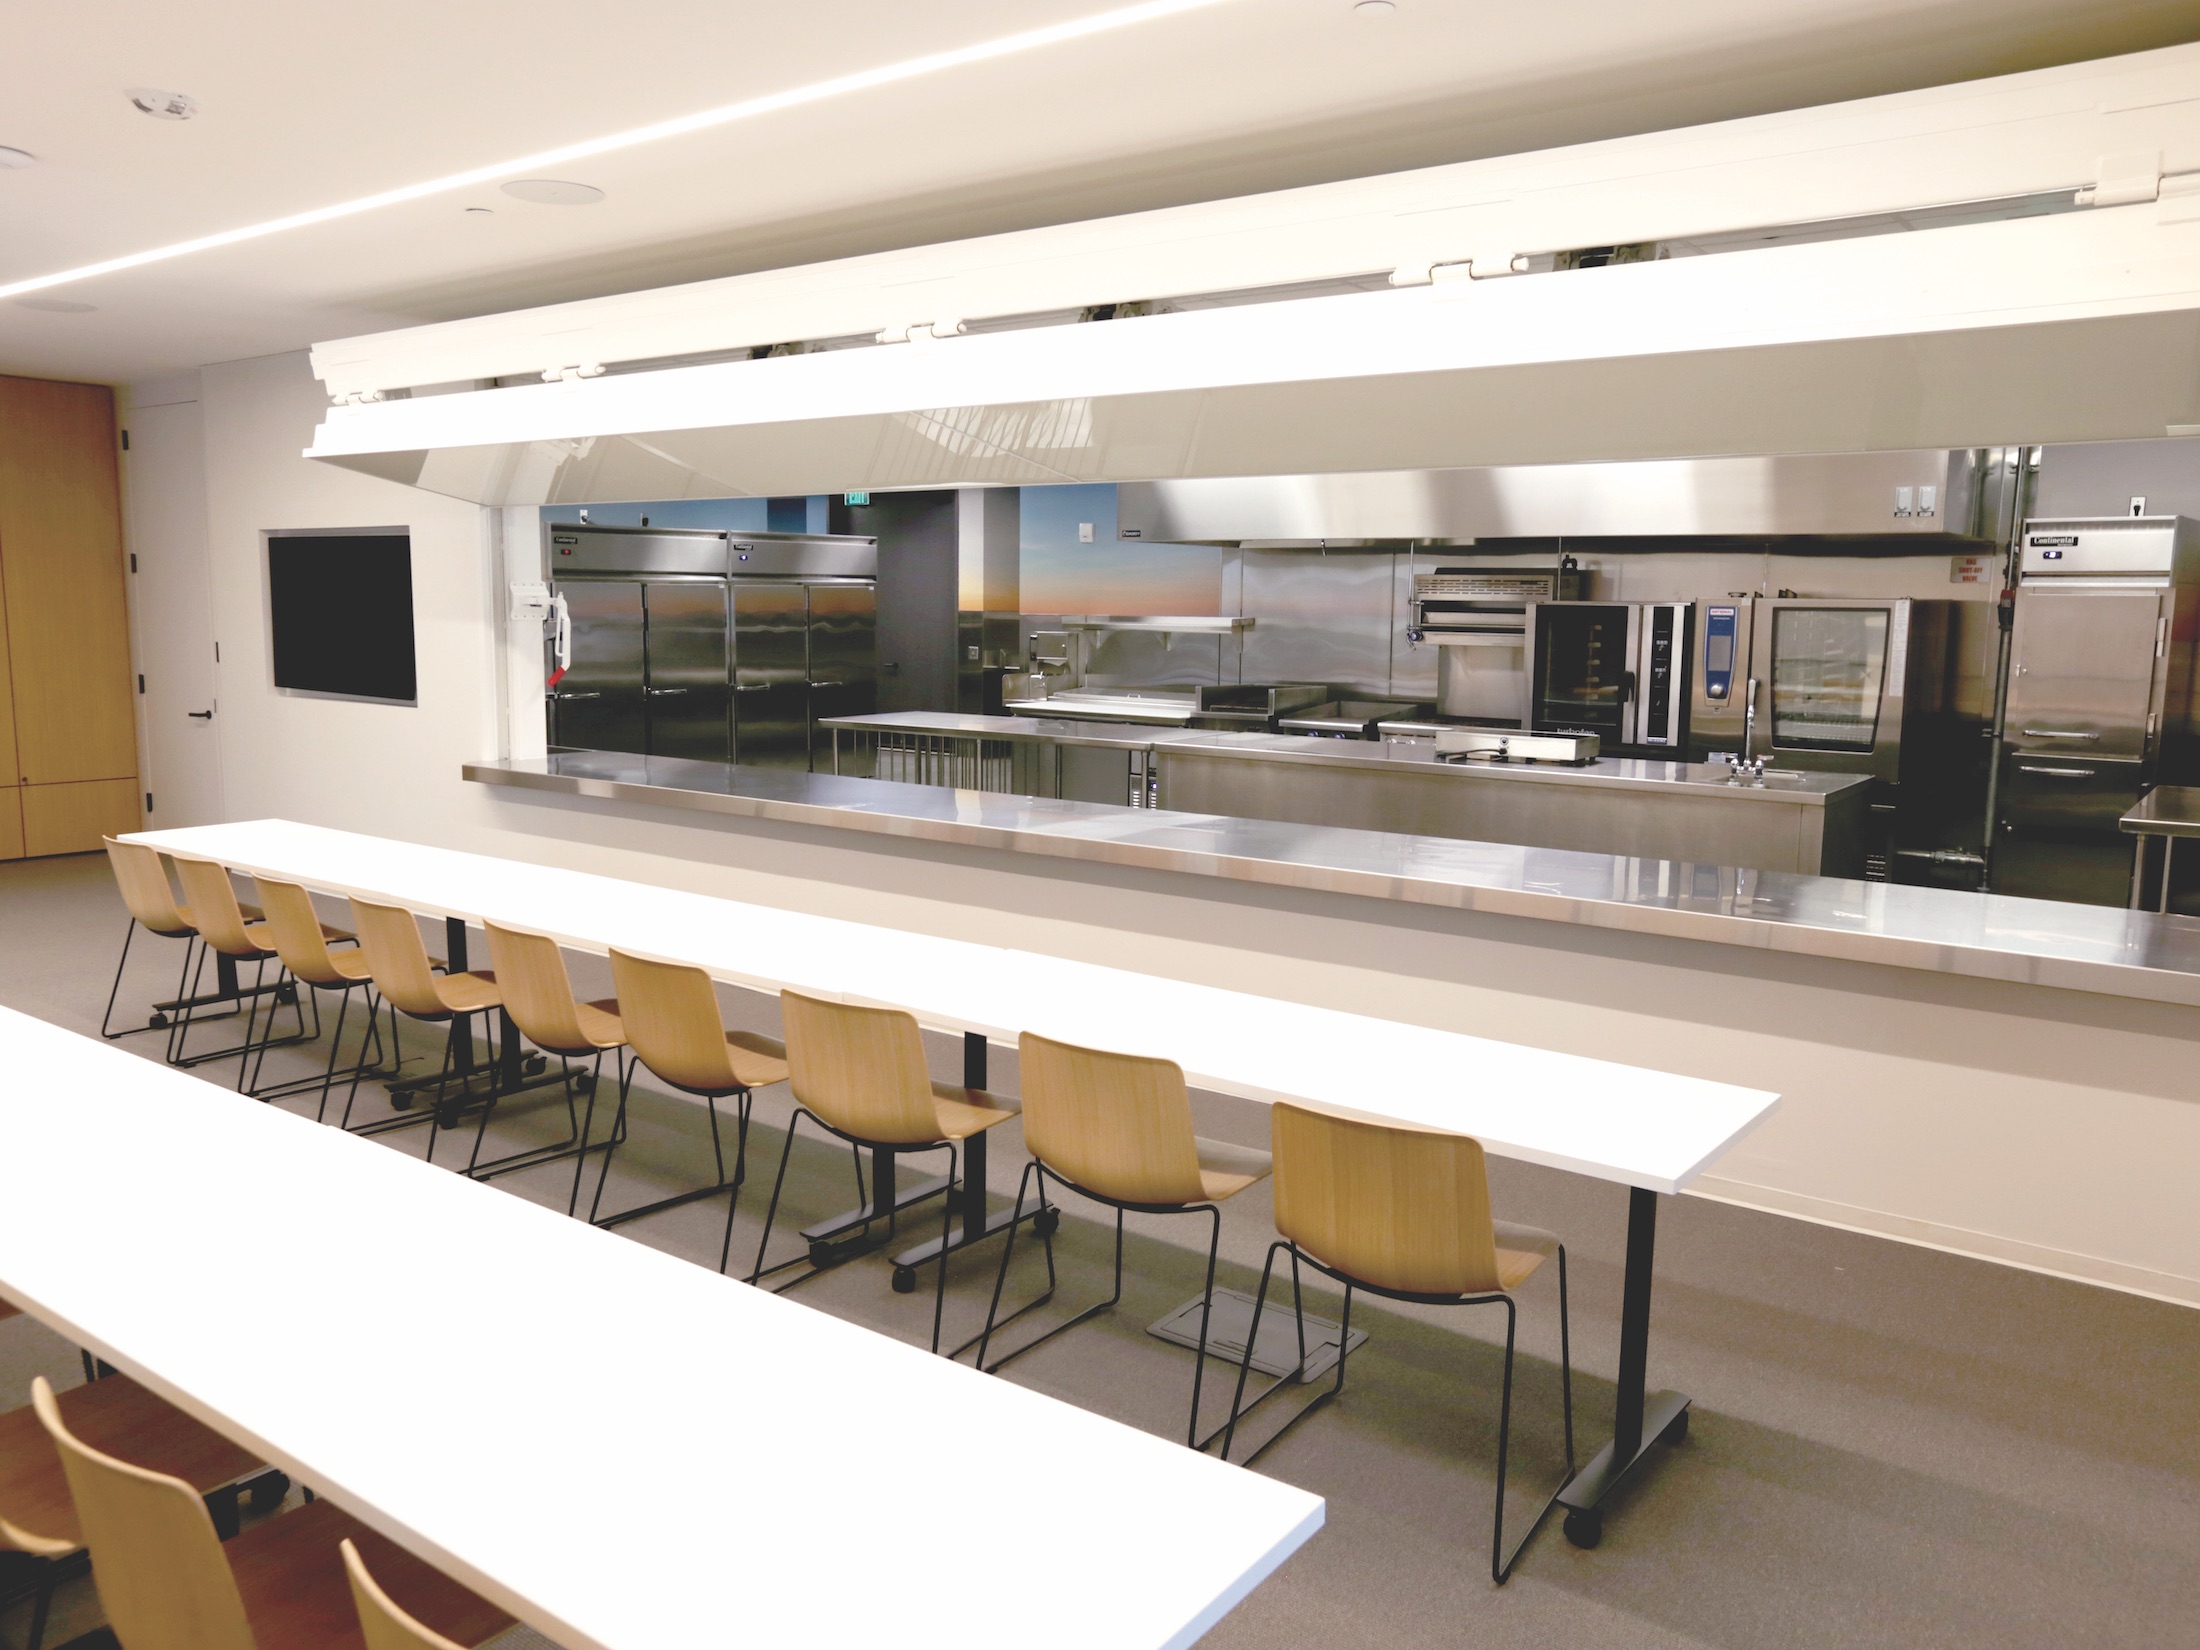 Gateway Center Kitchen with classroom area